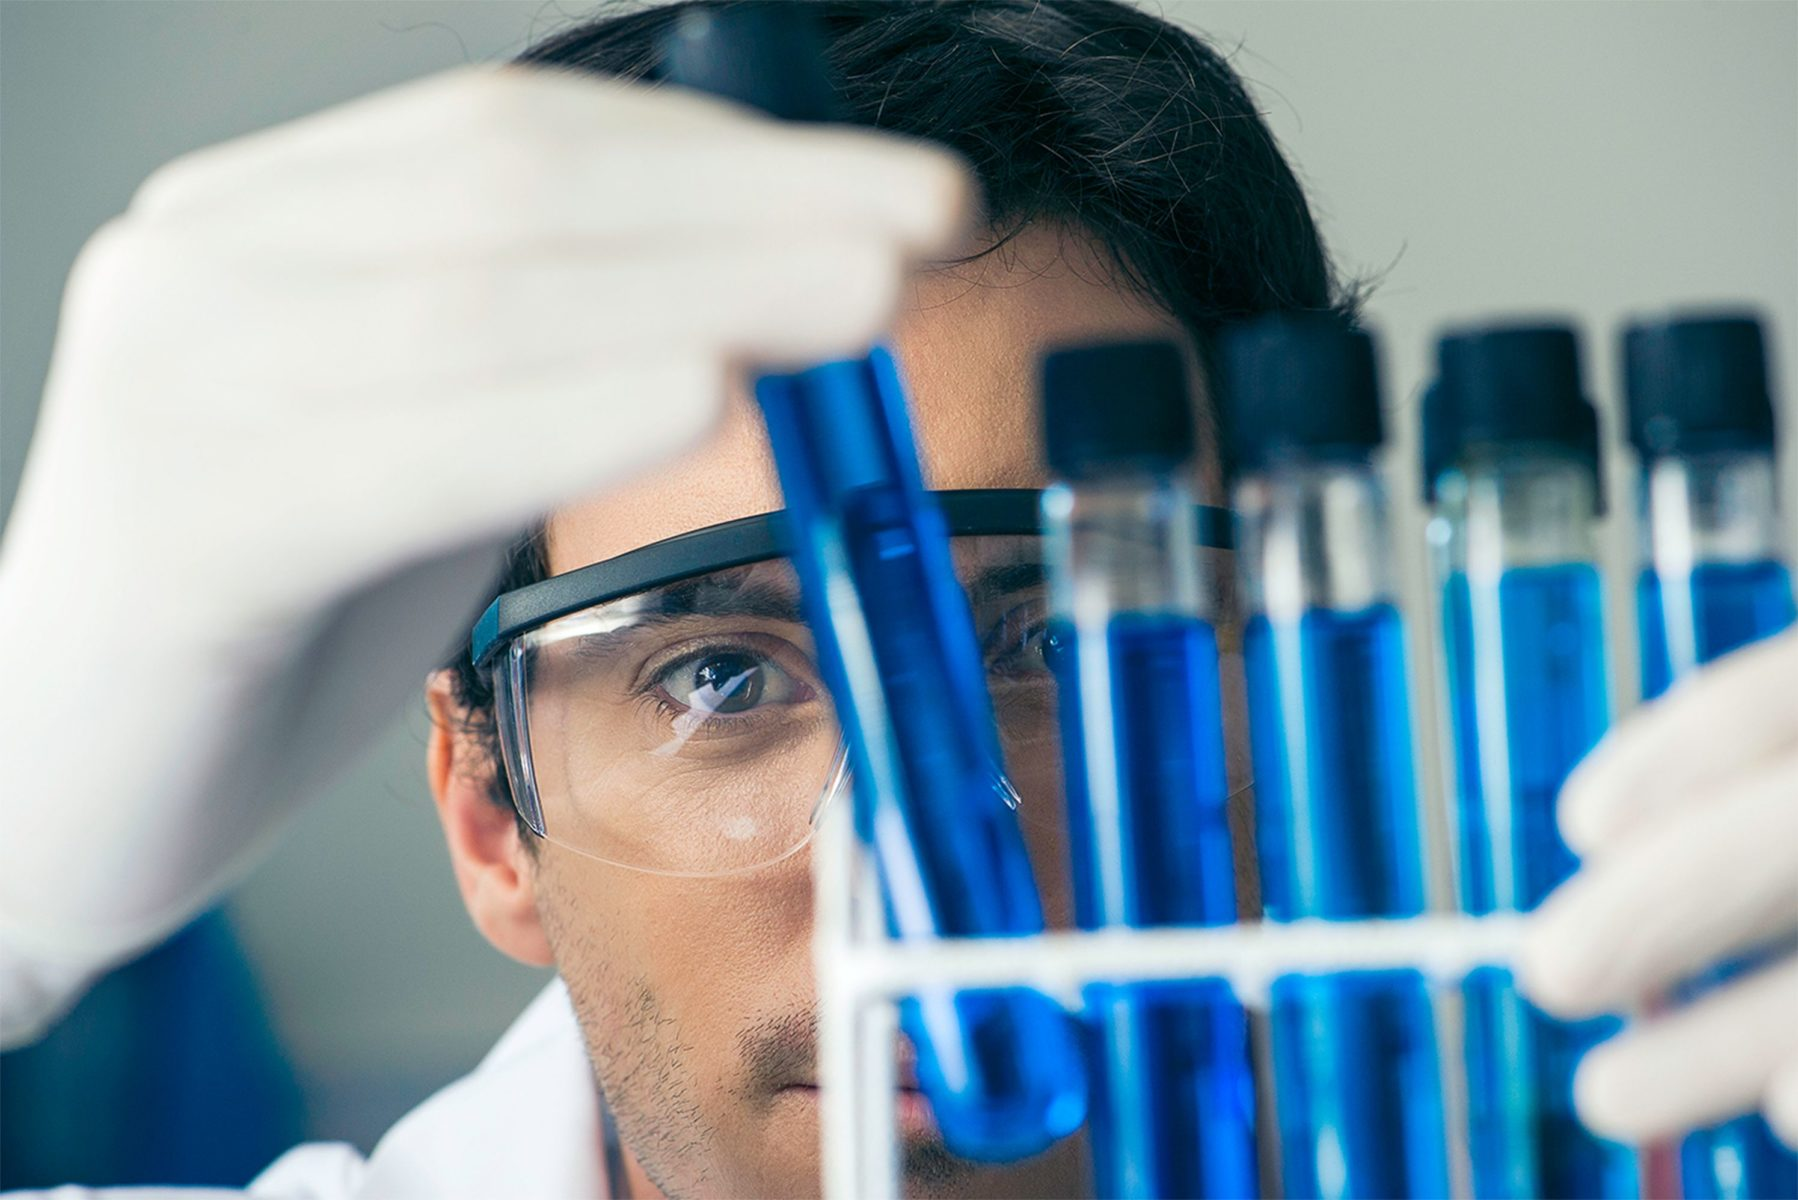 A man in gloves and goggles looking closely at several test tubes containing blue liquid.